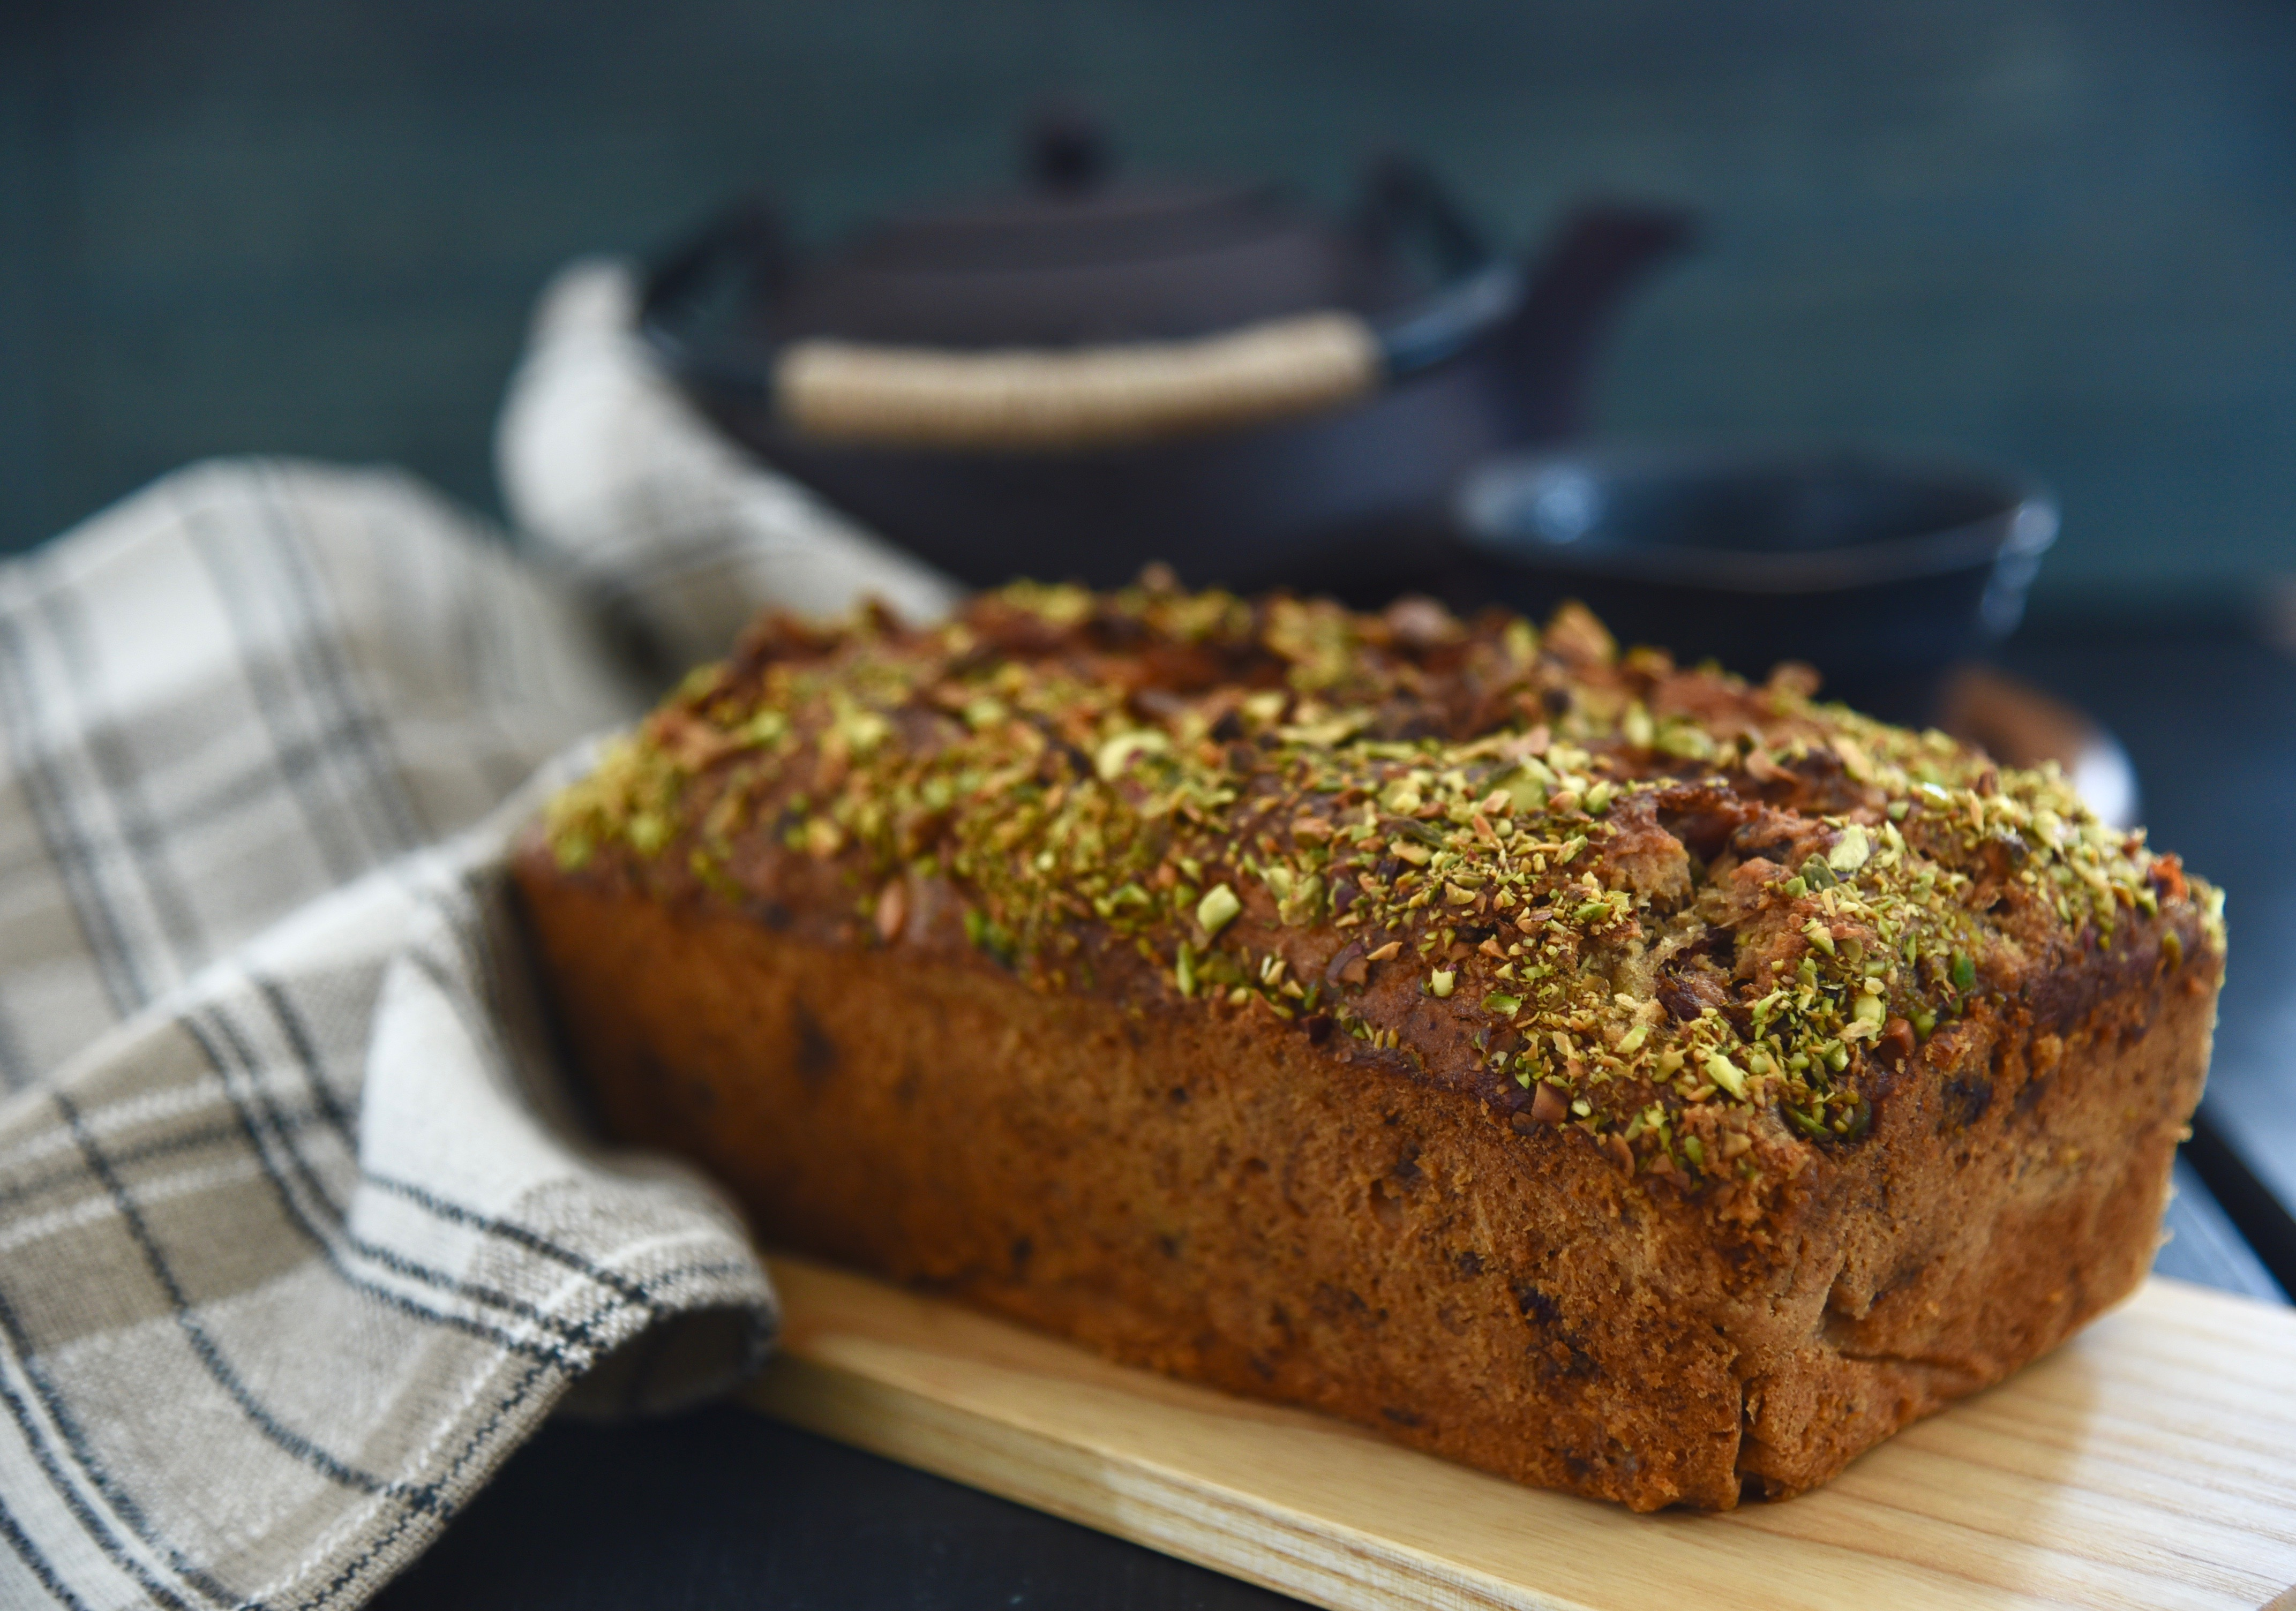 Banana, Dates and Pistachios Bread